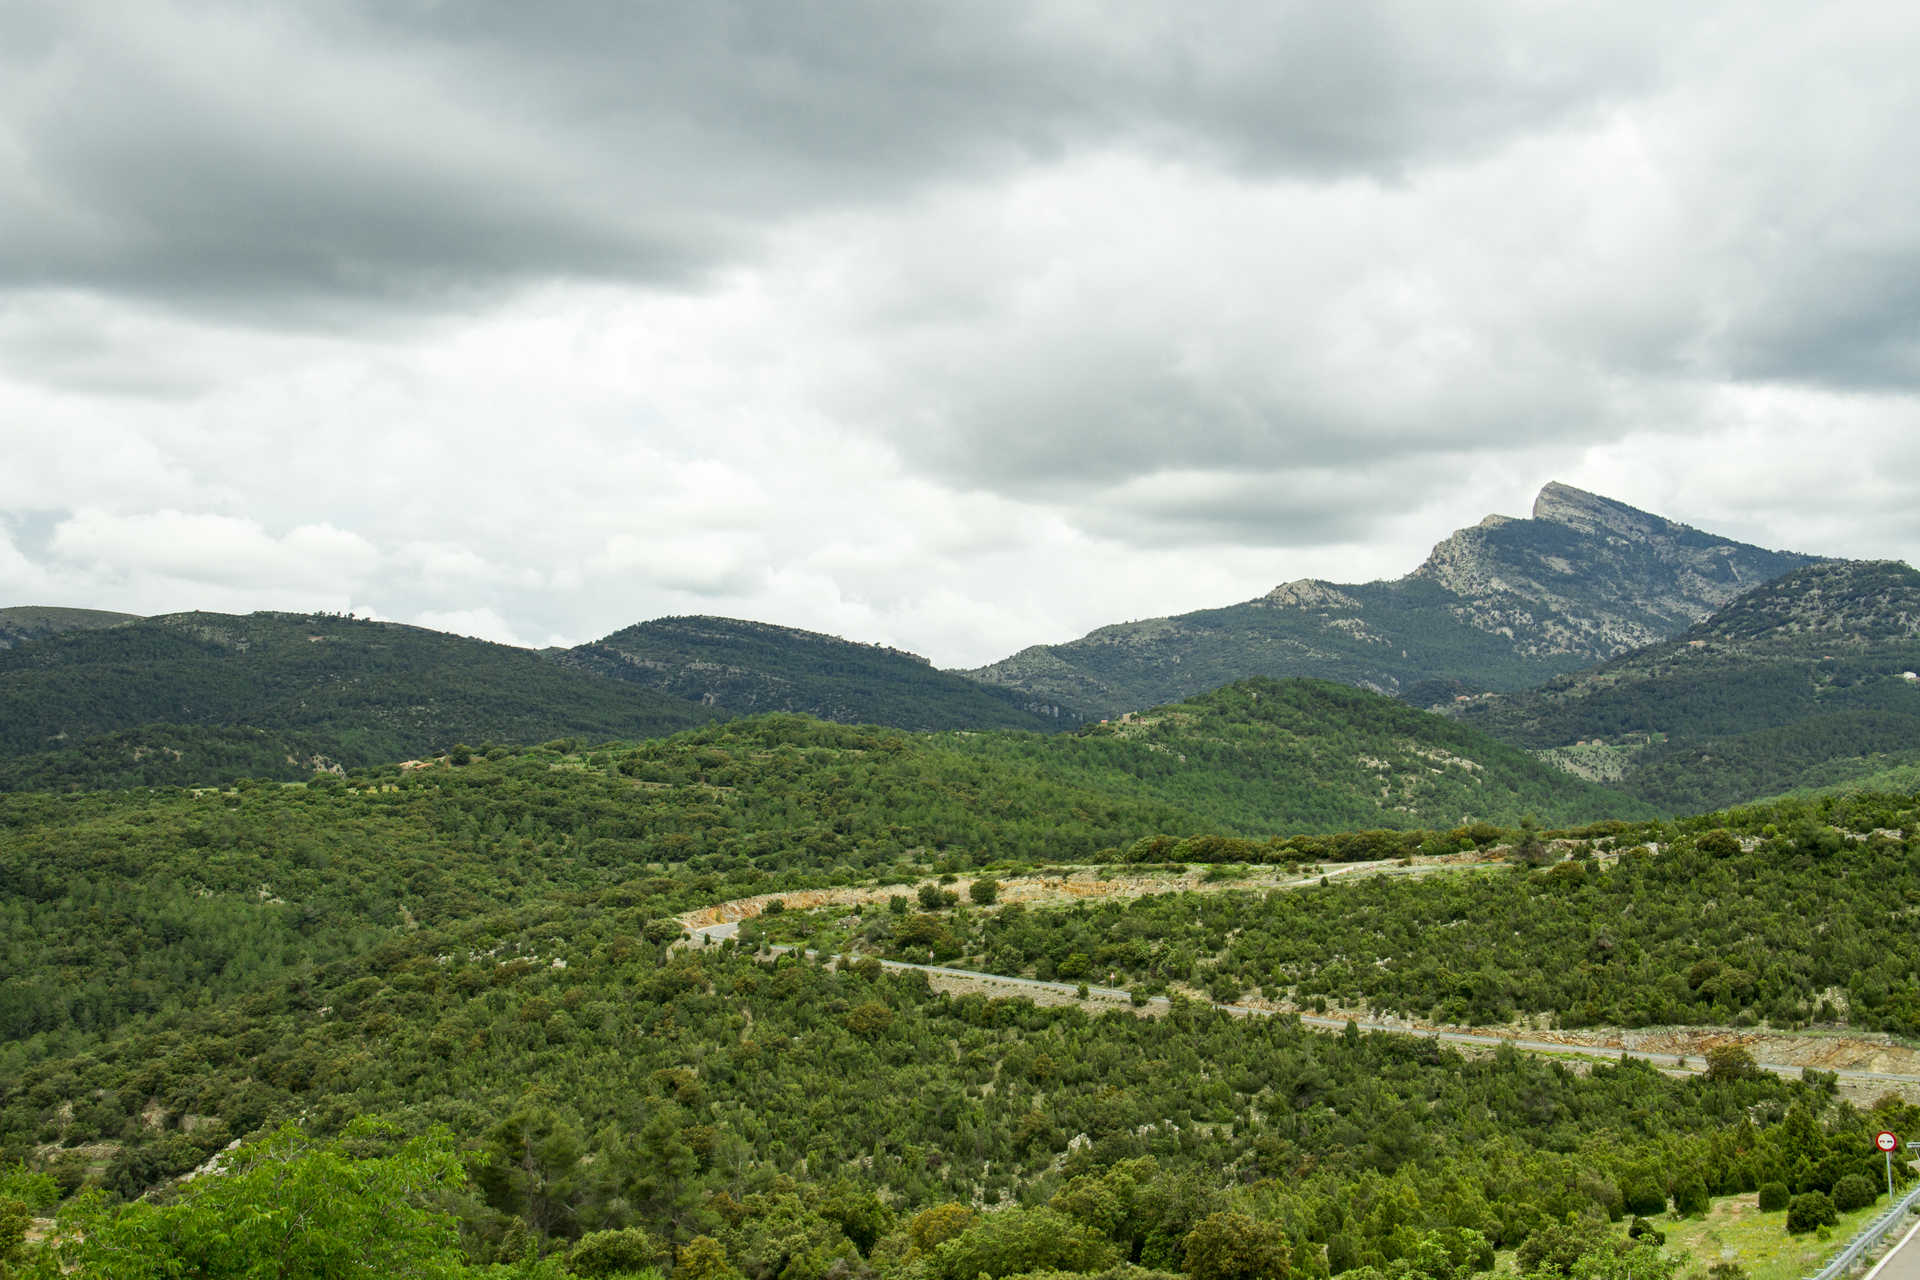 The Penyagolosa Nature Park